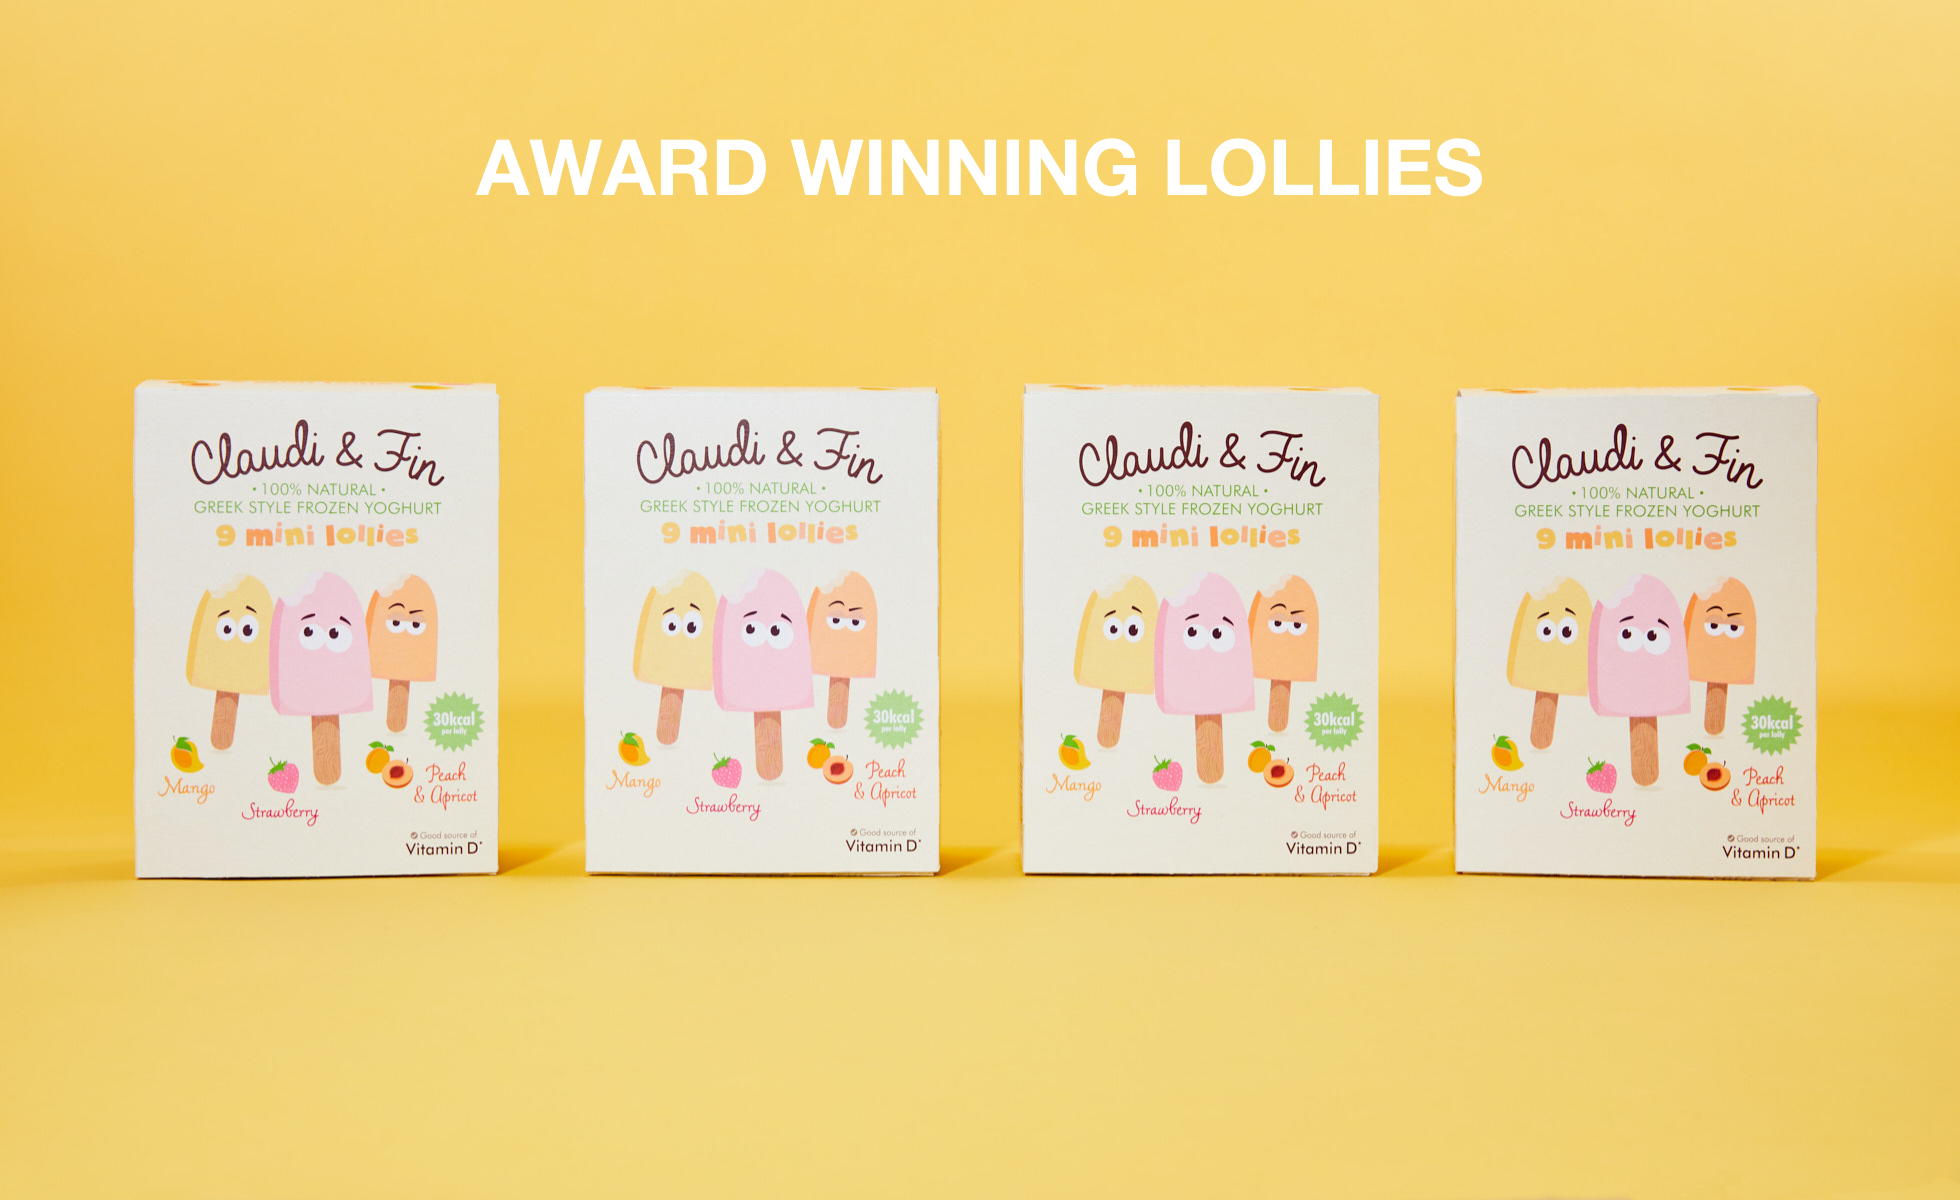 Four boxes of Claudi and Fin lollies lined up against a yellow background